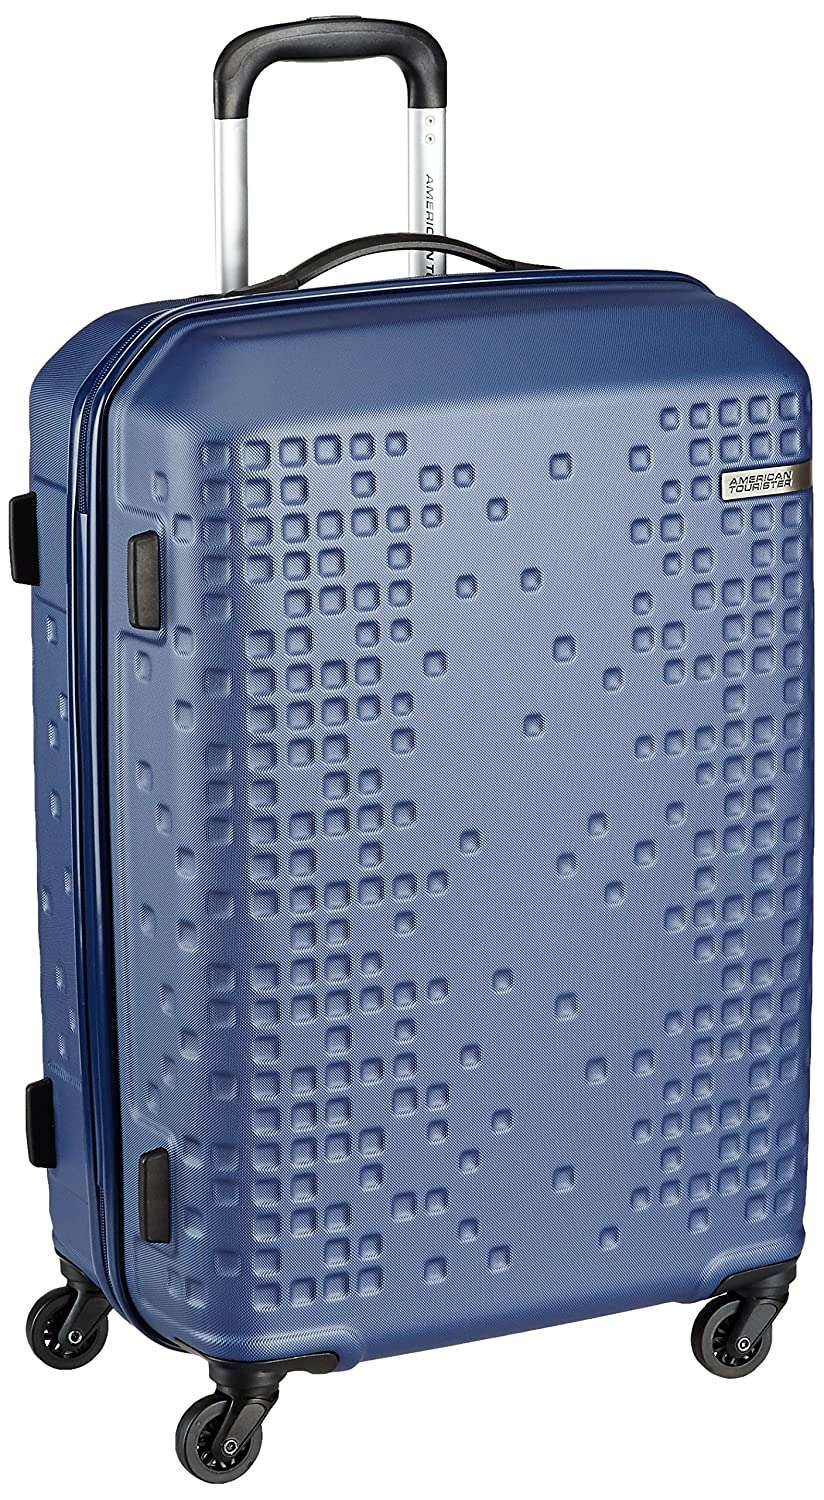 c93ded199 American Tourister Cruze ABS 80 cms Blue Hardsided Suitcase (AN6 (0) 01  003). by American Tourister